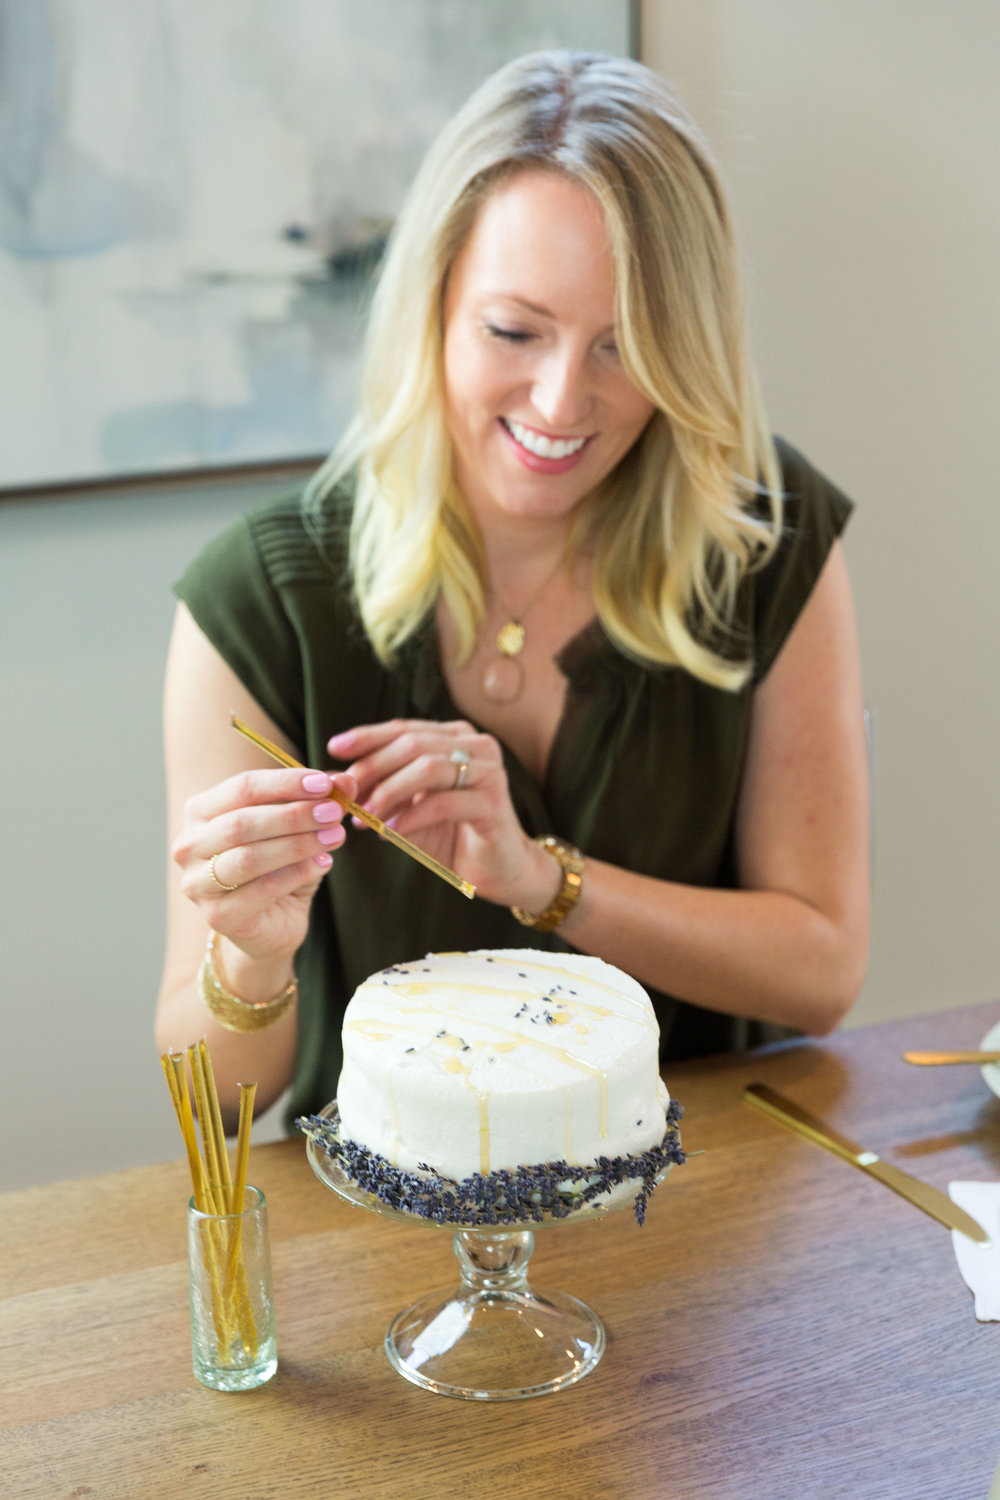 A celebration is not complete without something sweet! To keep things simple, I purchased a plain vanilla cake and added my own homemade Lavender Lemon Icing using Royal Rose Syrups. I decorated the cake with culinary lavender and drizzled it with Bee Local Honey Sticks for a rustic look.